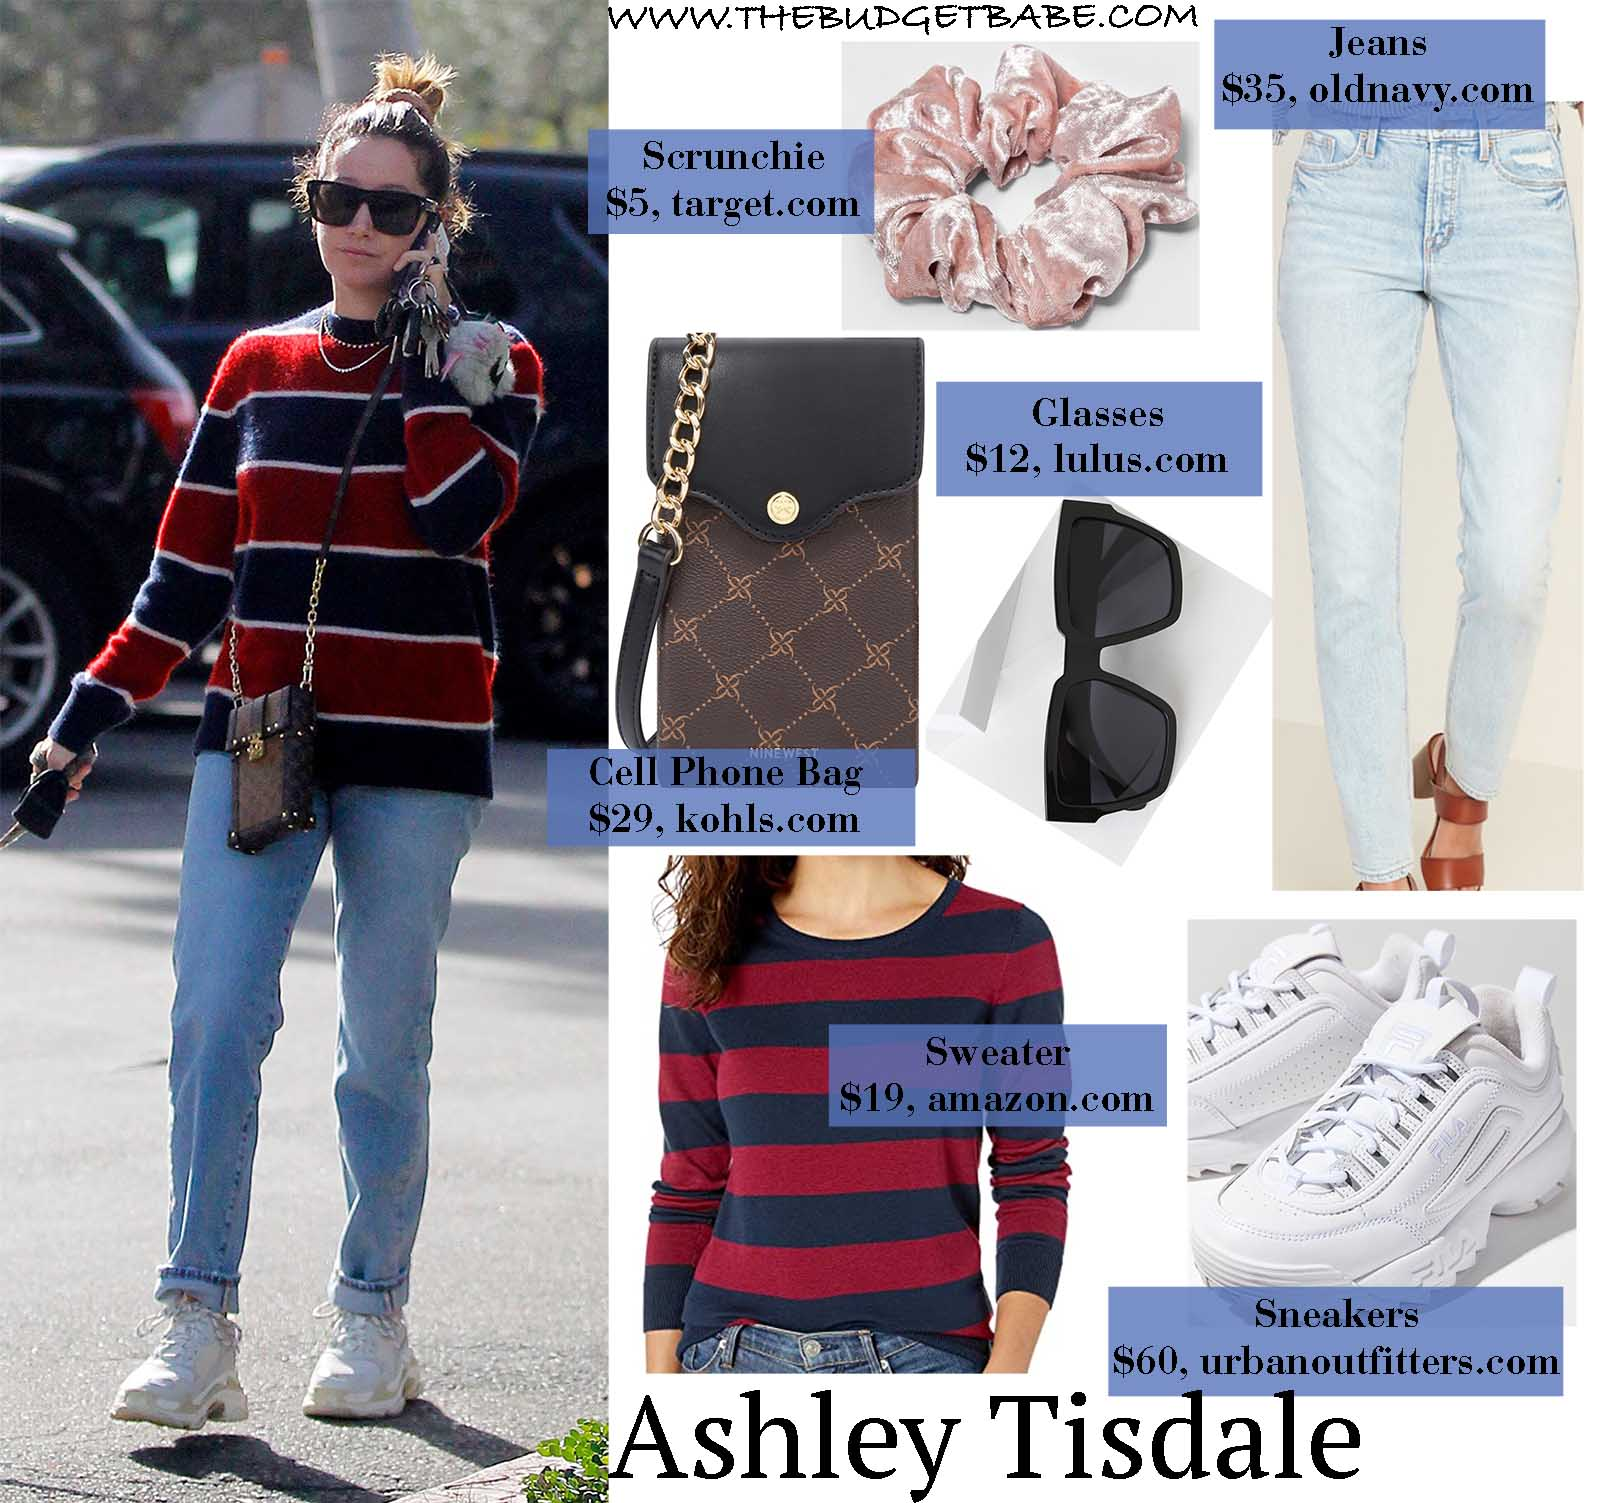 Ashley Tisdale's look is our new winter uniform!